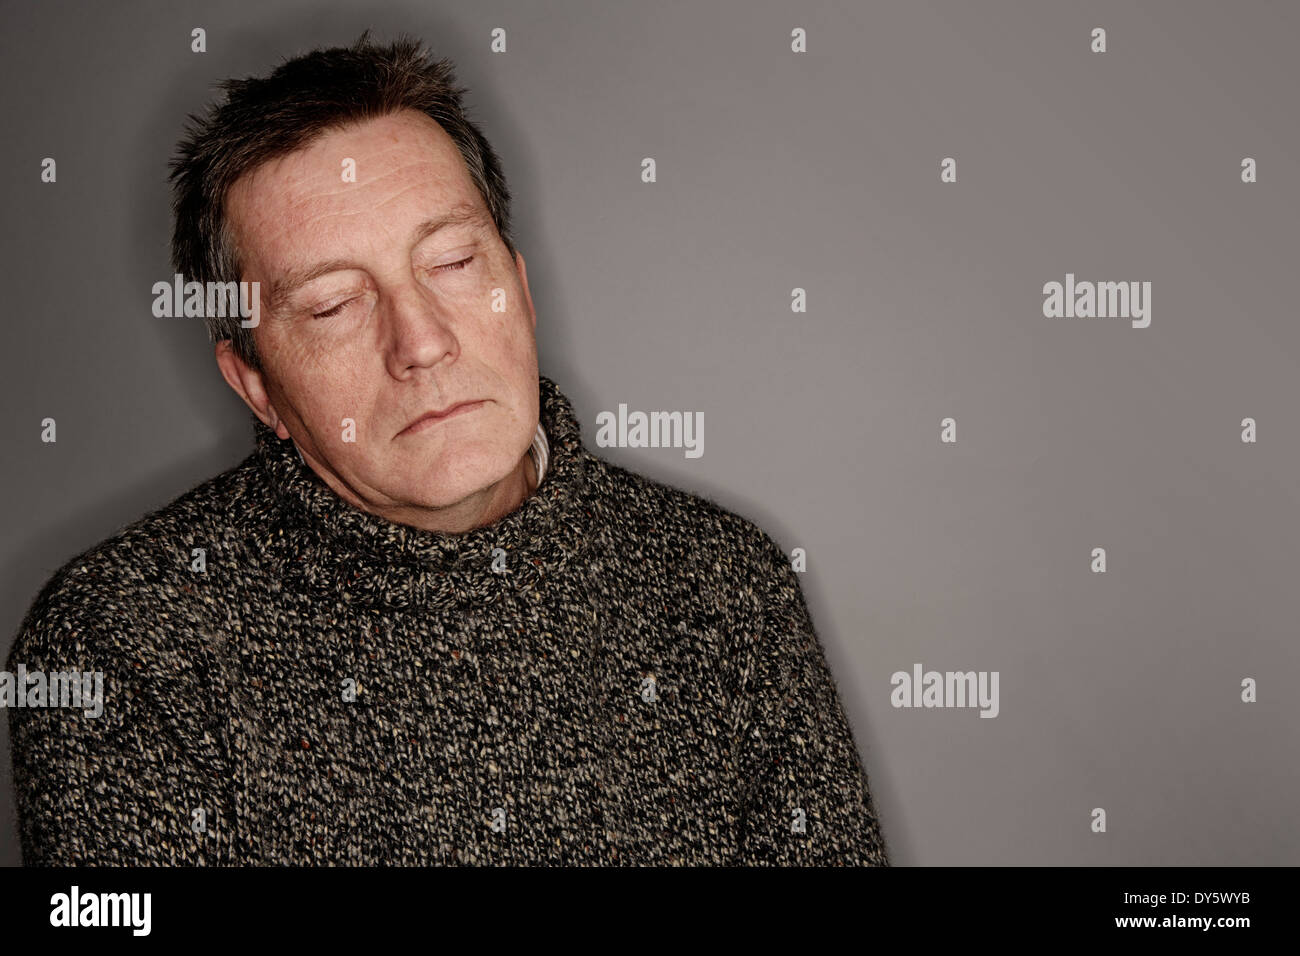 older man with eyes shut, asleep - Stock Image